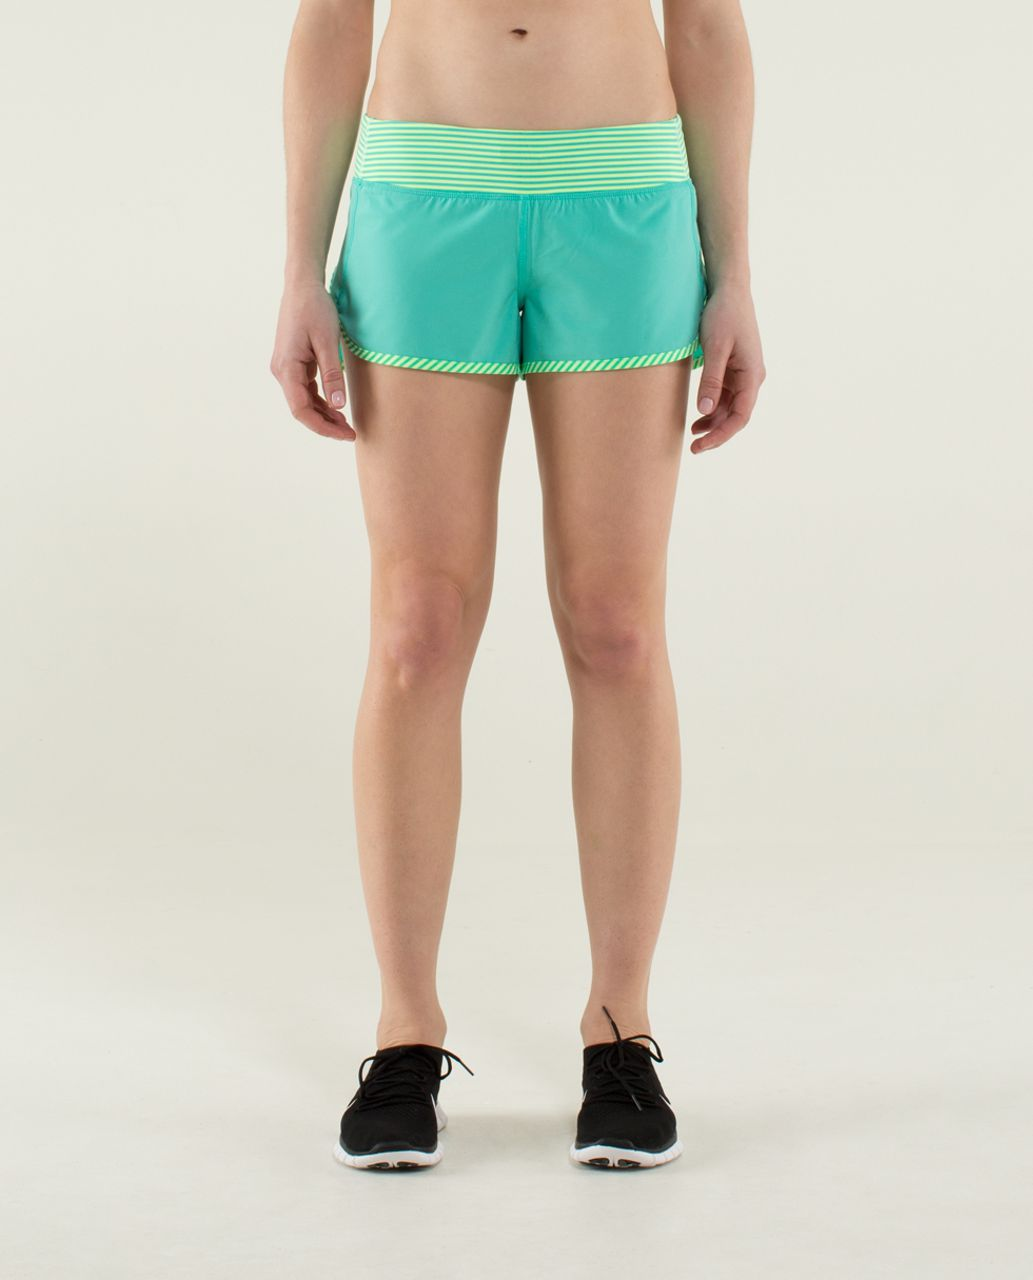 Lululemon Run:  Speed Short *4-way Stretch - Bali Breeze / 1/8 Stripe Printed Bali Breeze